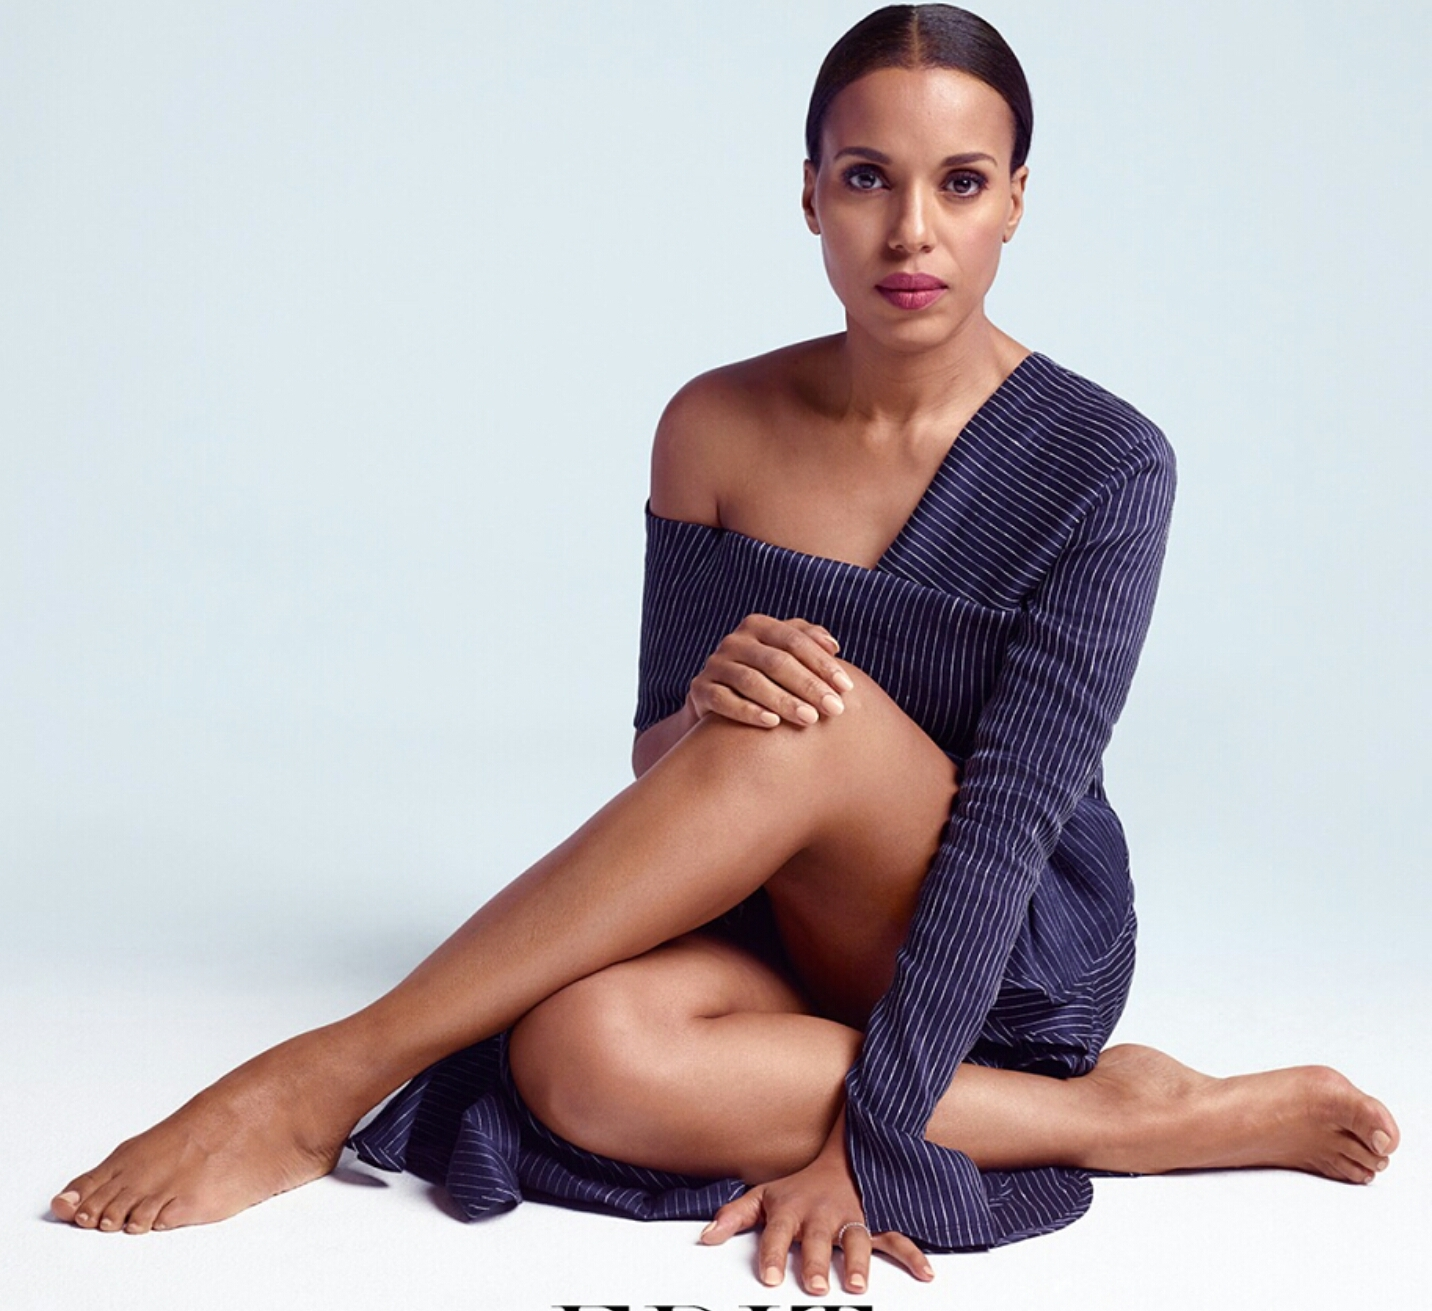 Bikini Kerry Washington nude photos 2019